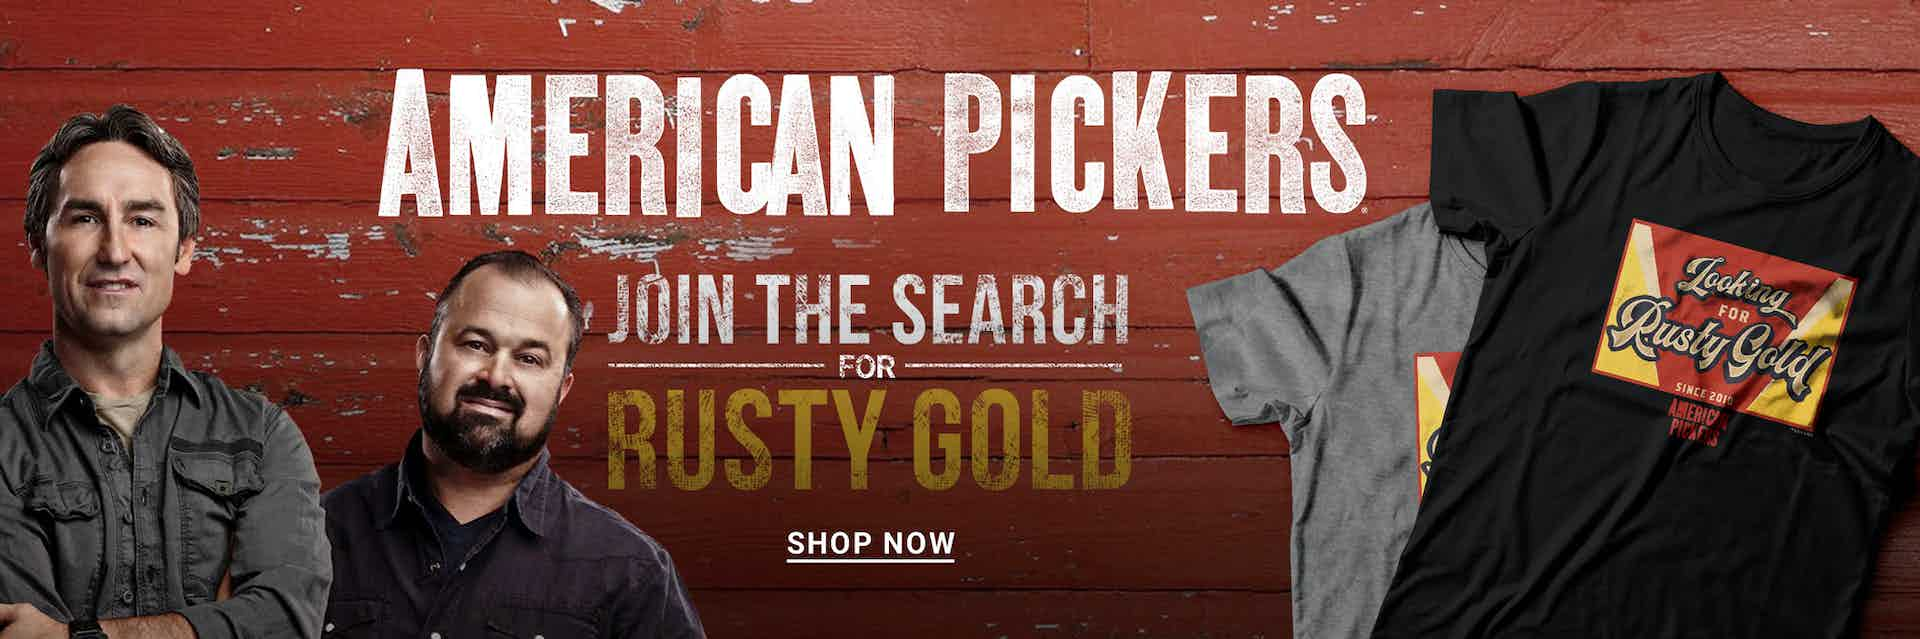 American Pickers Gifts